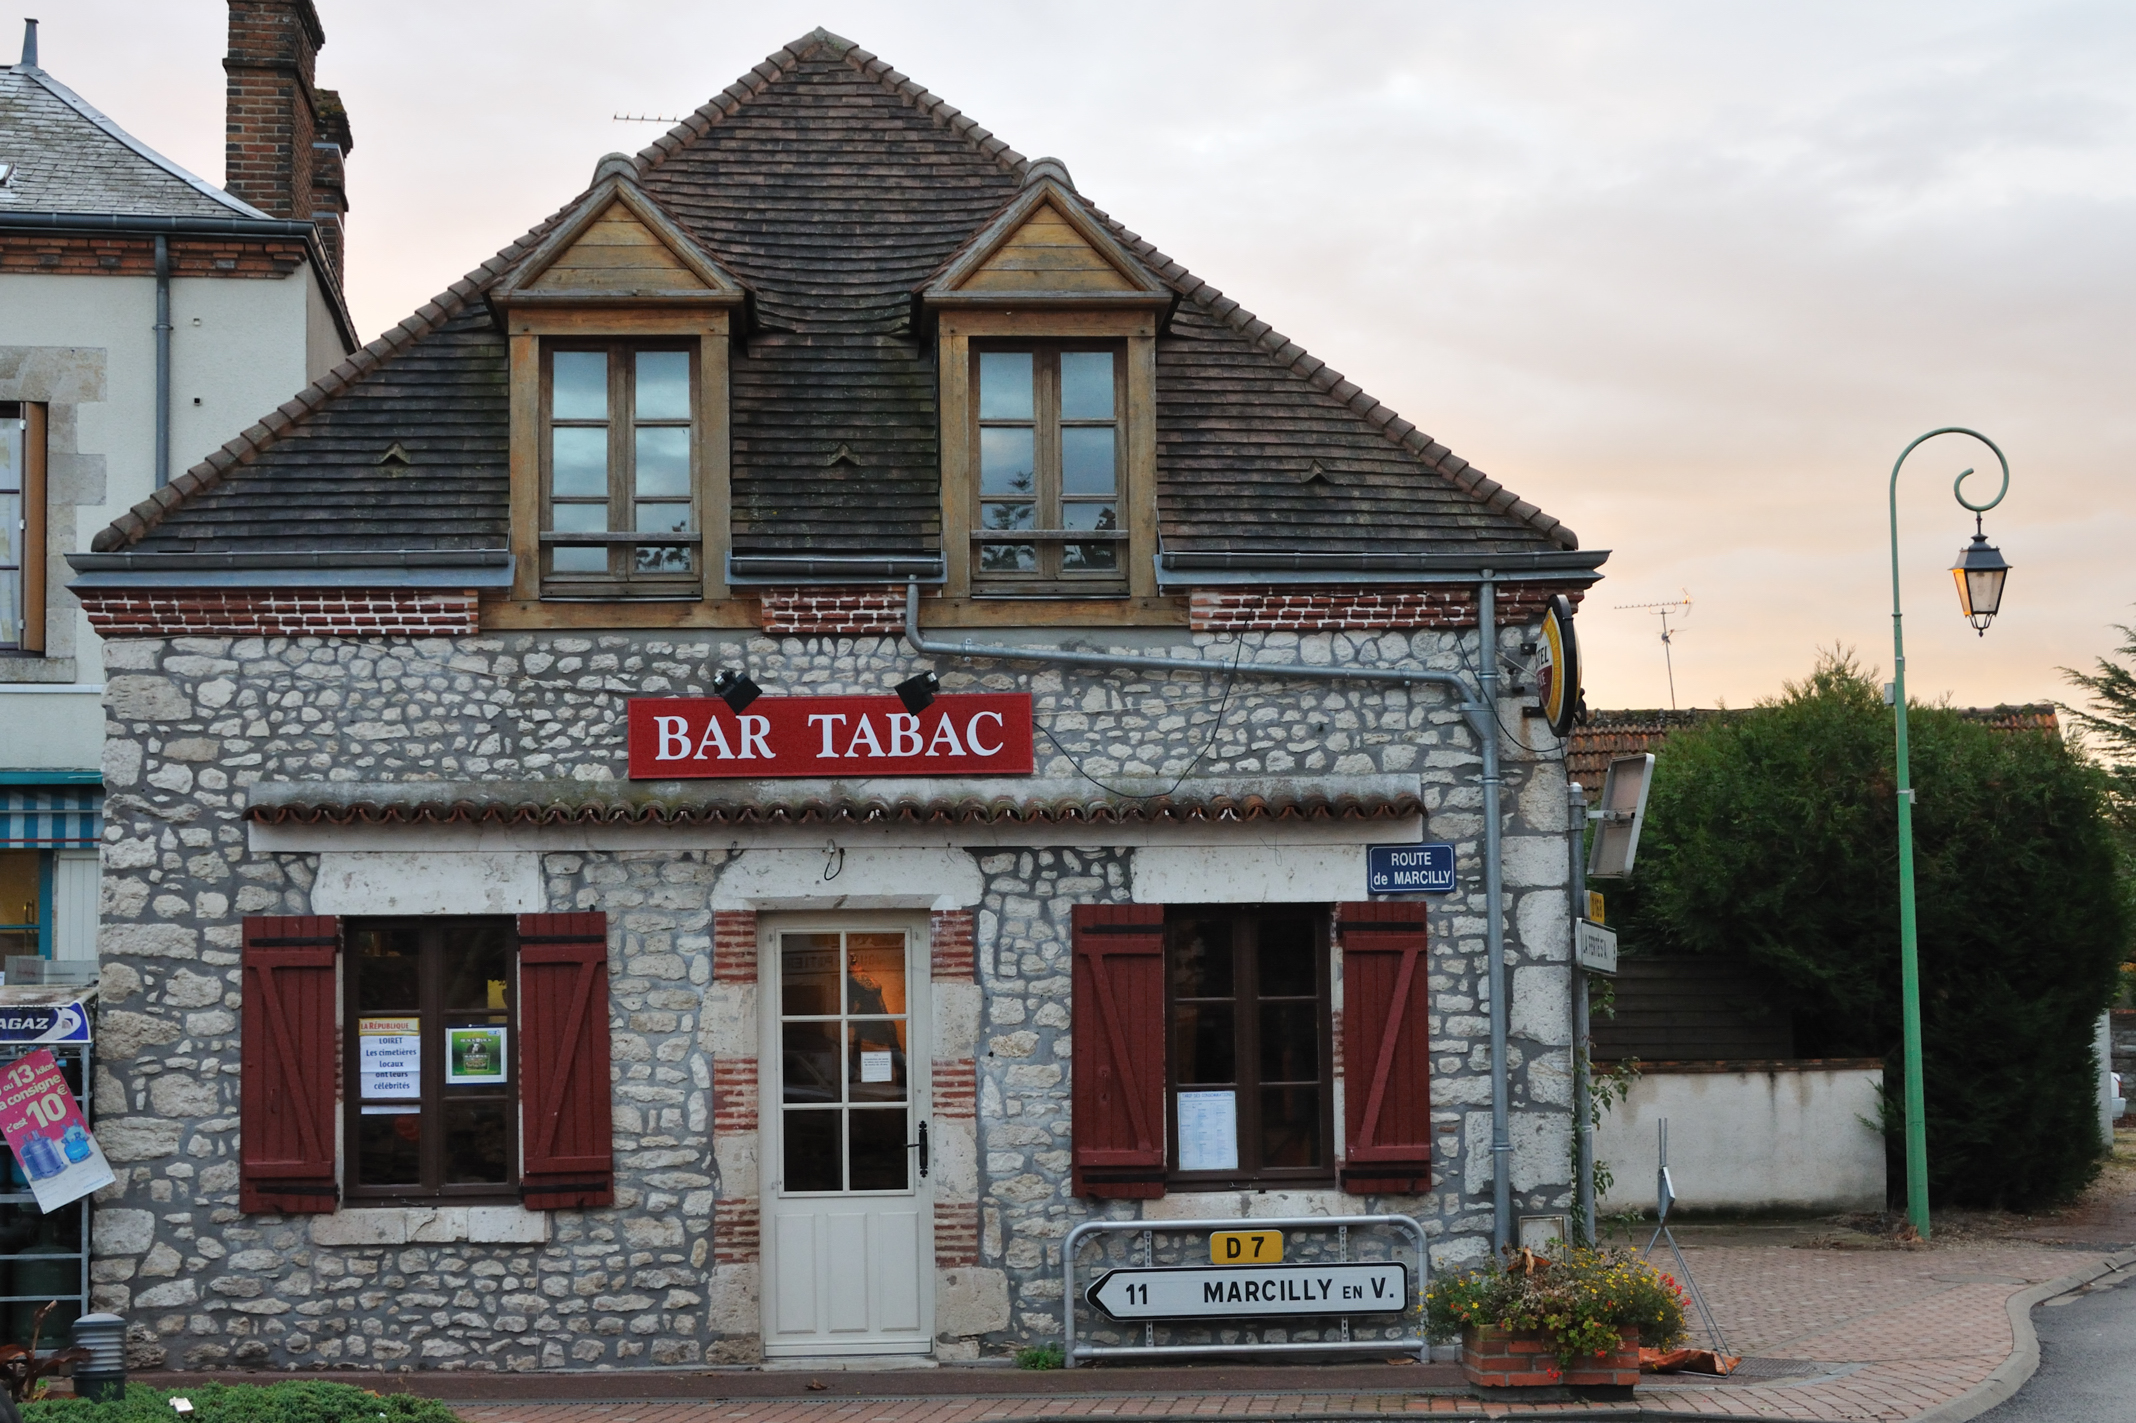 Ardon France  city photo : Ardon bar tabac La Gibecière 2 Wikimedia Commons